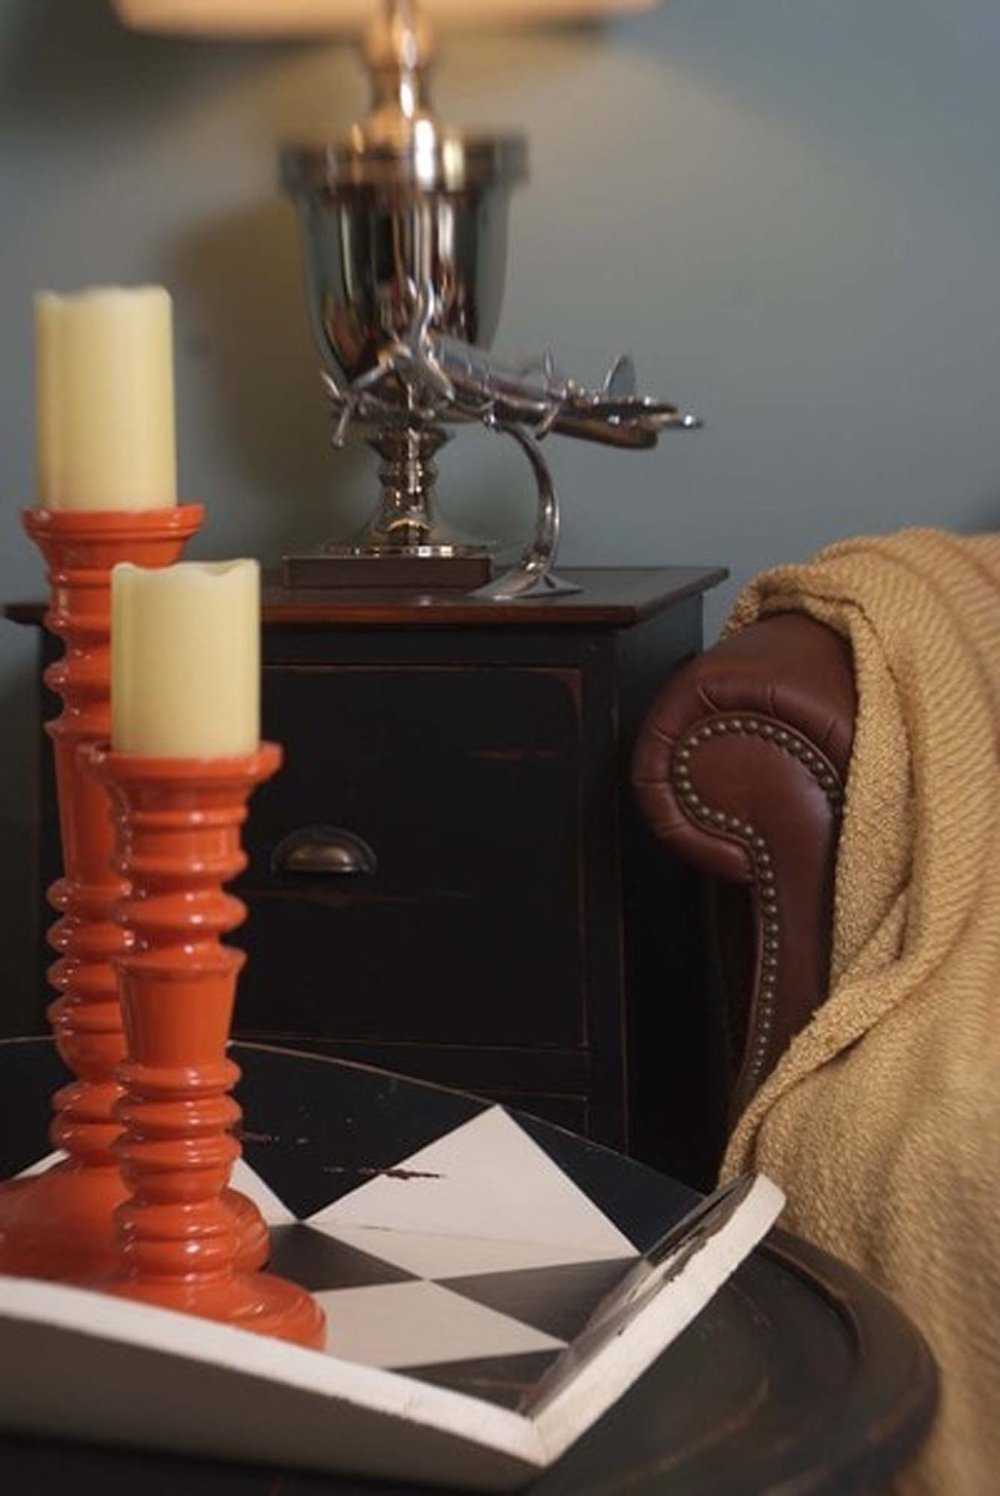 Tall orange candle stick holders with brown leather sofa in background